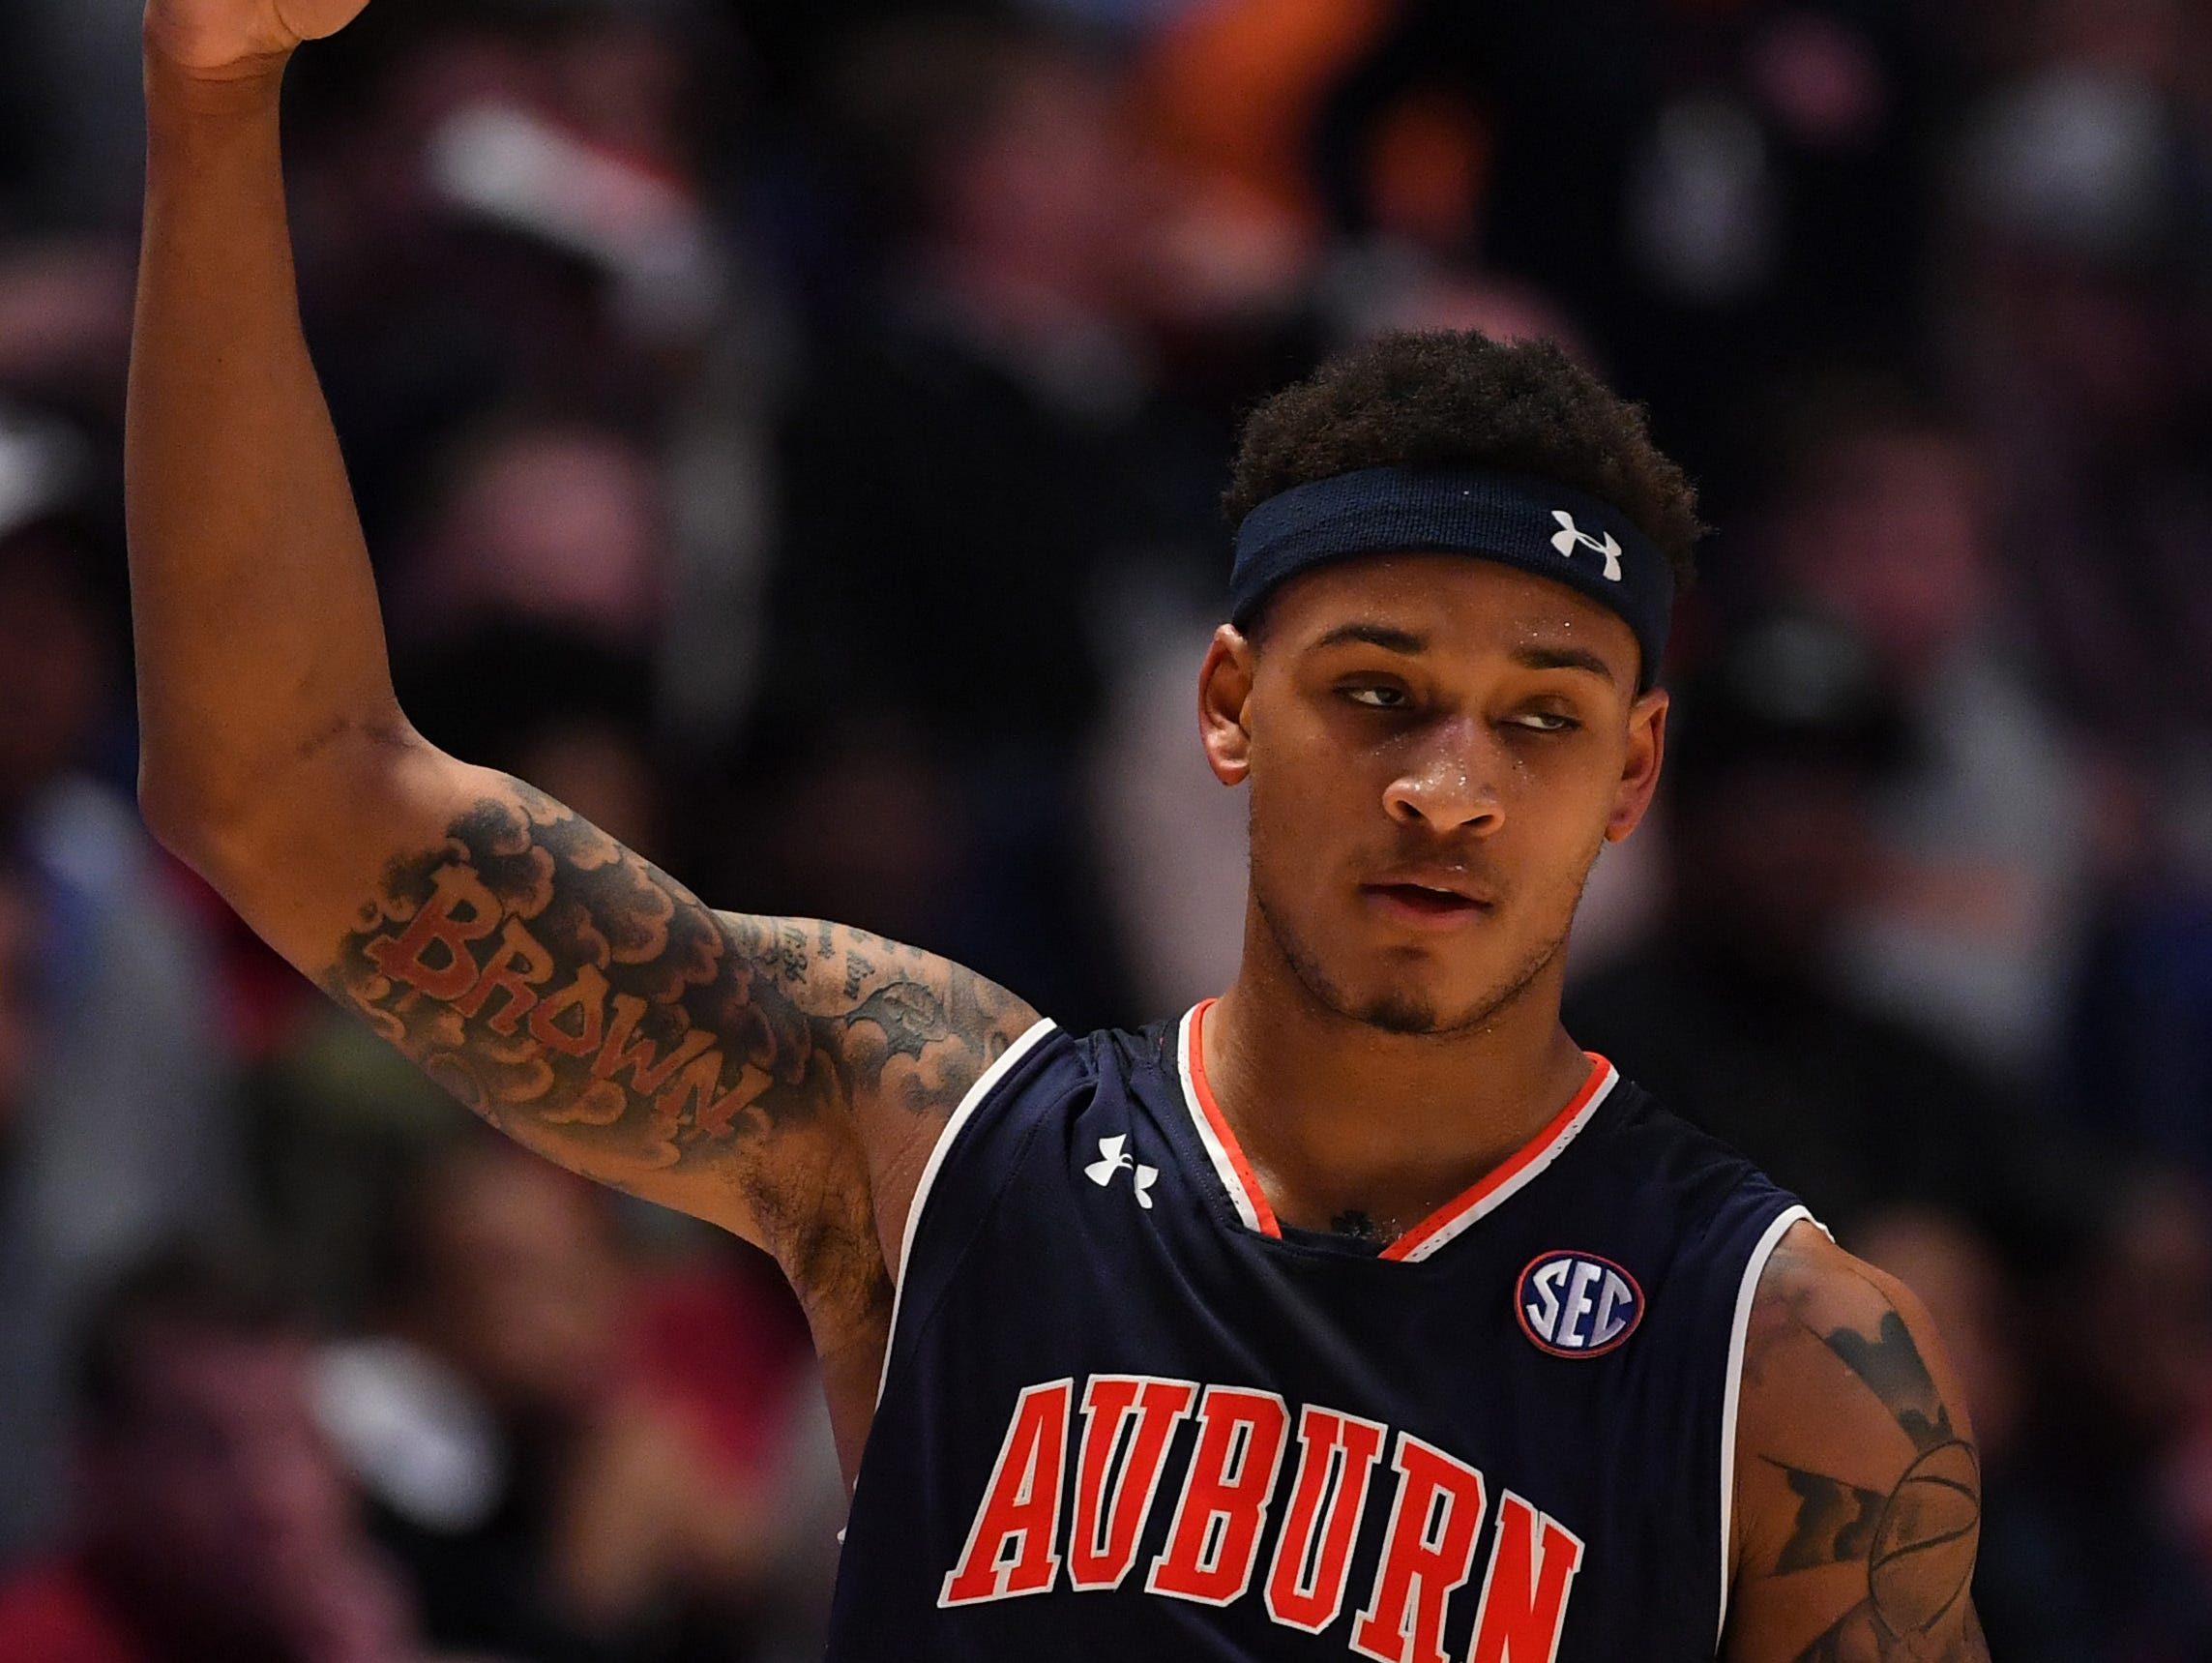 Mar 15, 2019; Nashville, TN, USA; Auburn Tigers guard Bryce Brown (2) reacts after a basket against the South Carolina Gamecocks during the first half of the SEC conference tournament at Bridgestone Arena. Mandatory Credit: Christopher Hanewinckel-USA TODAY Sports